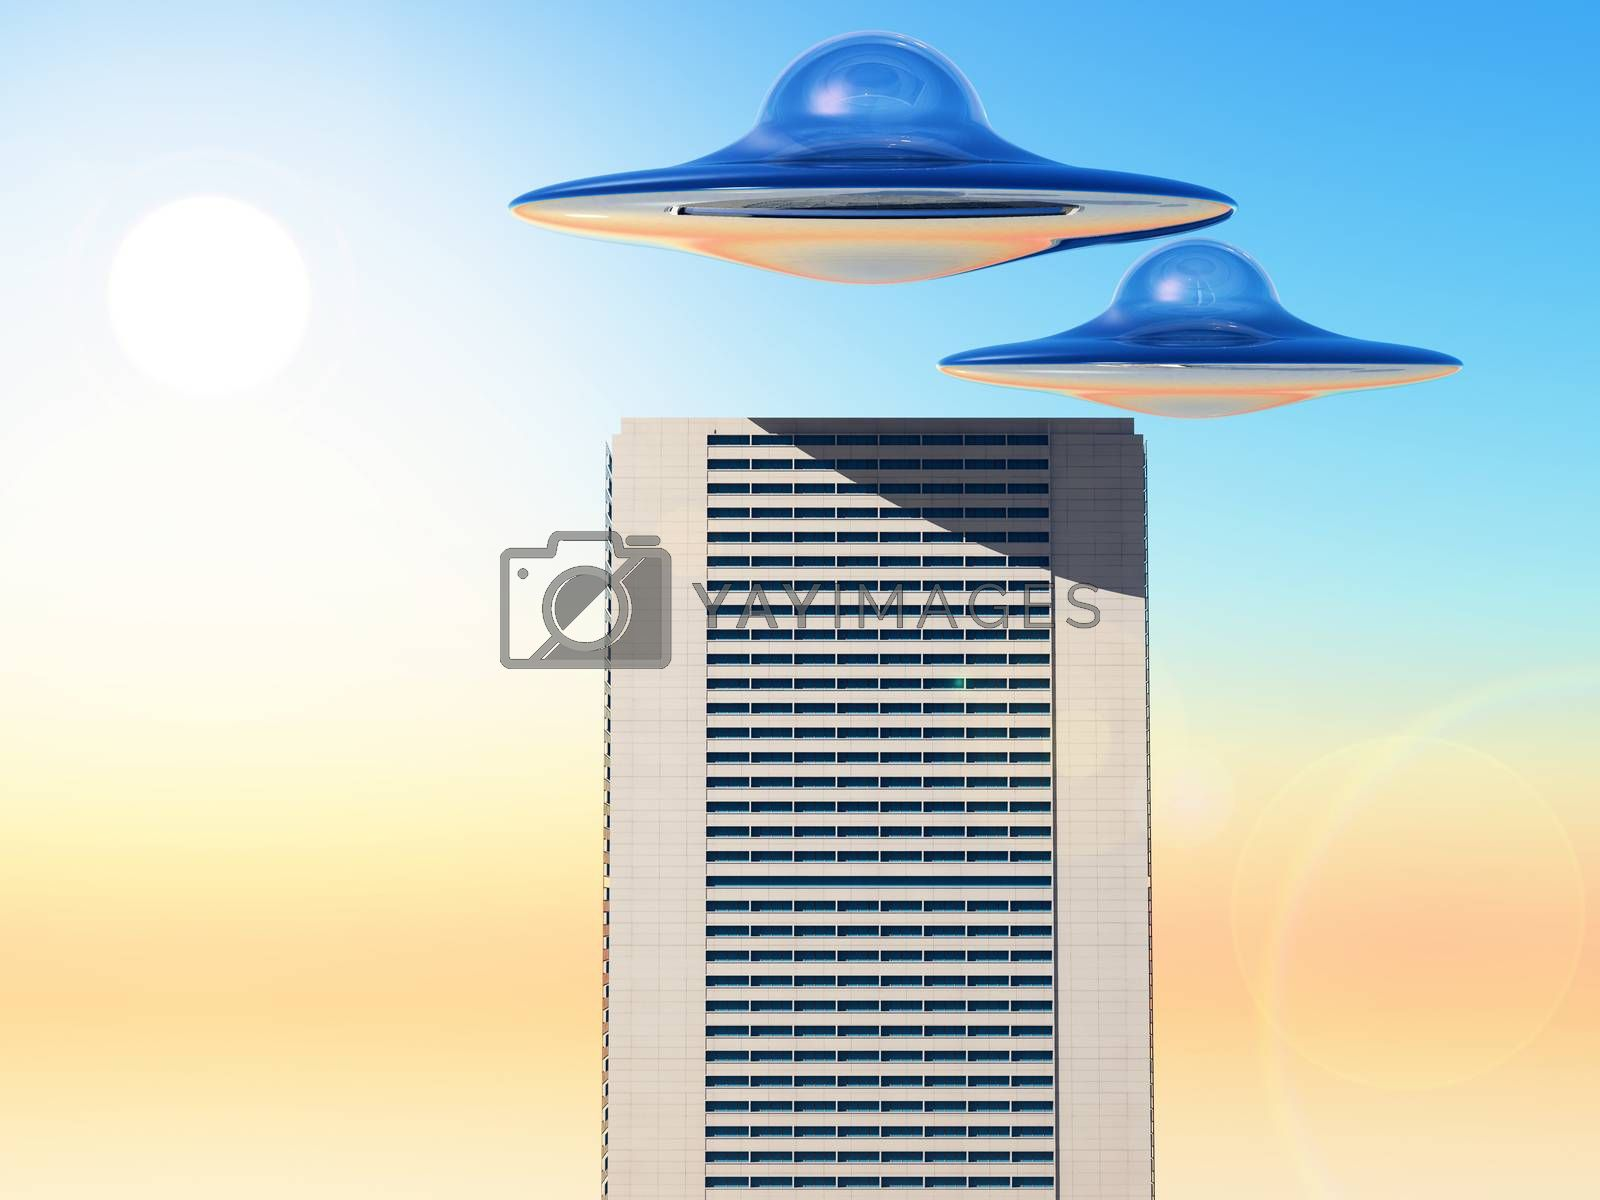 science fiction illustration,ufo over a city tower